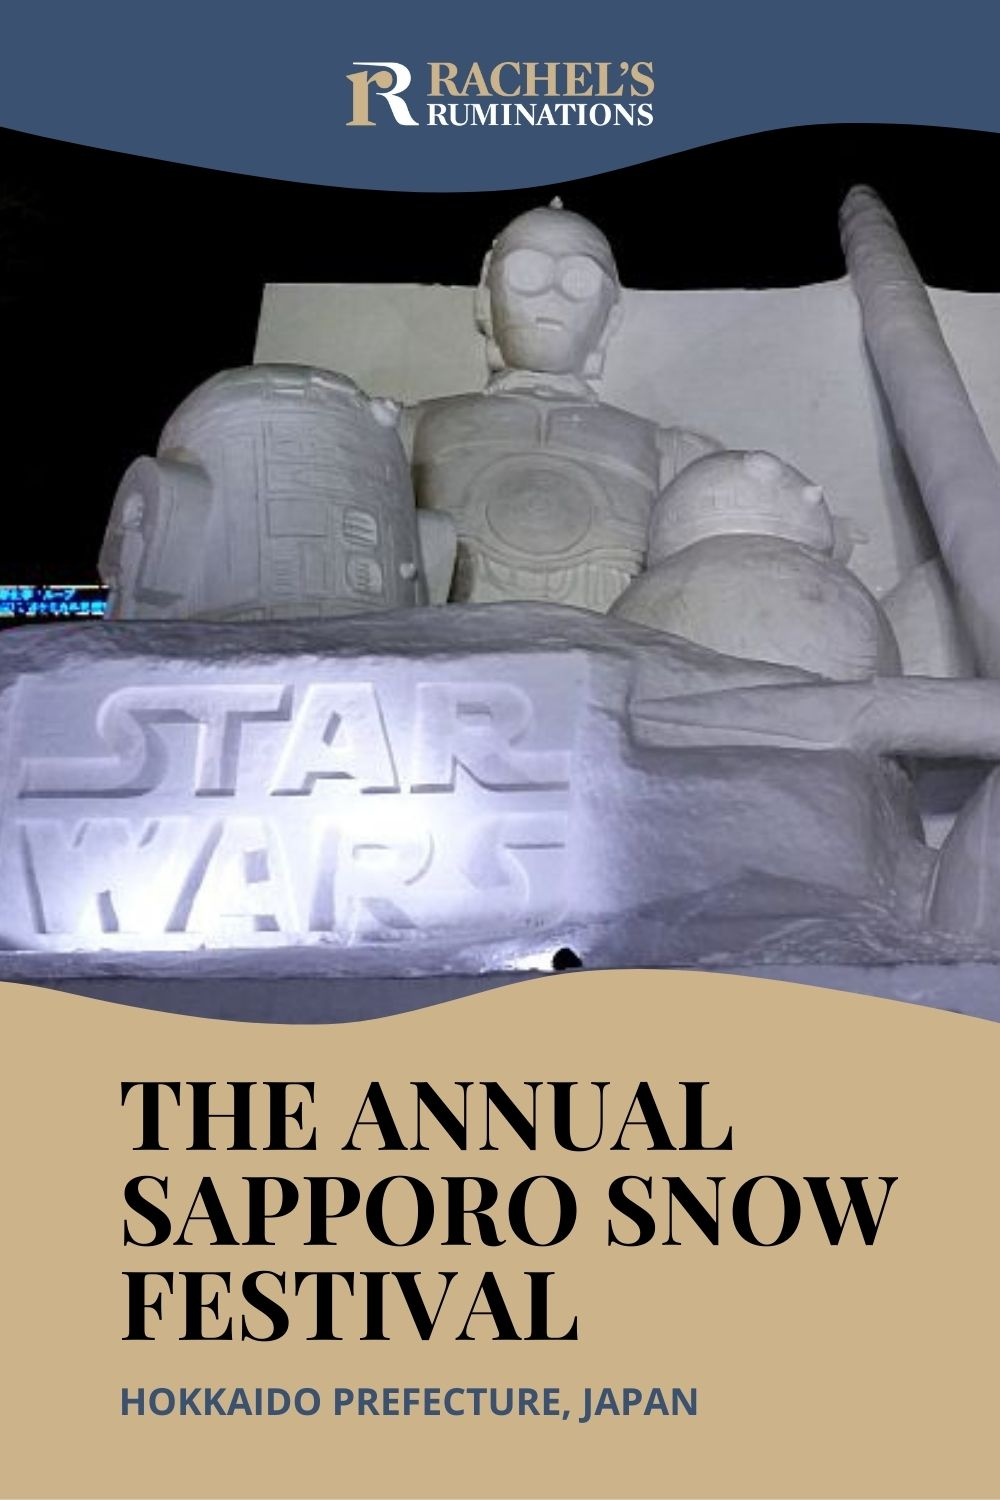 The Sapporo Snow Festival in Hokkaido prefecture, Japan, is a great chance to see amazing and huge sculptures made of ice and snow. Read all about it here, plus some tips for planning your visit! via @rachelsruminations